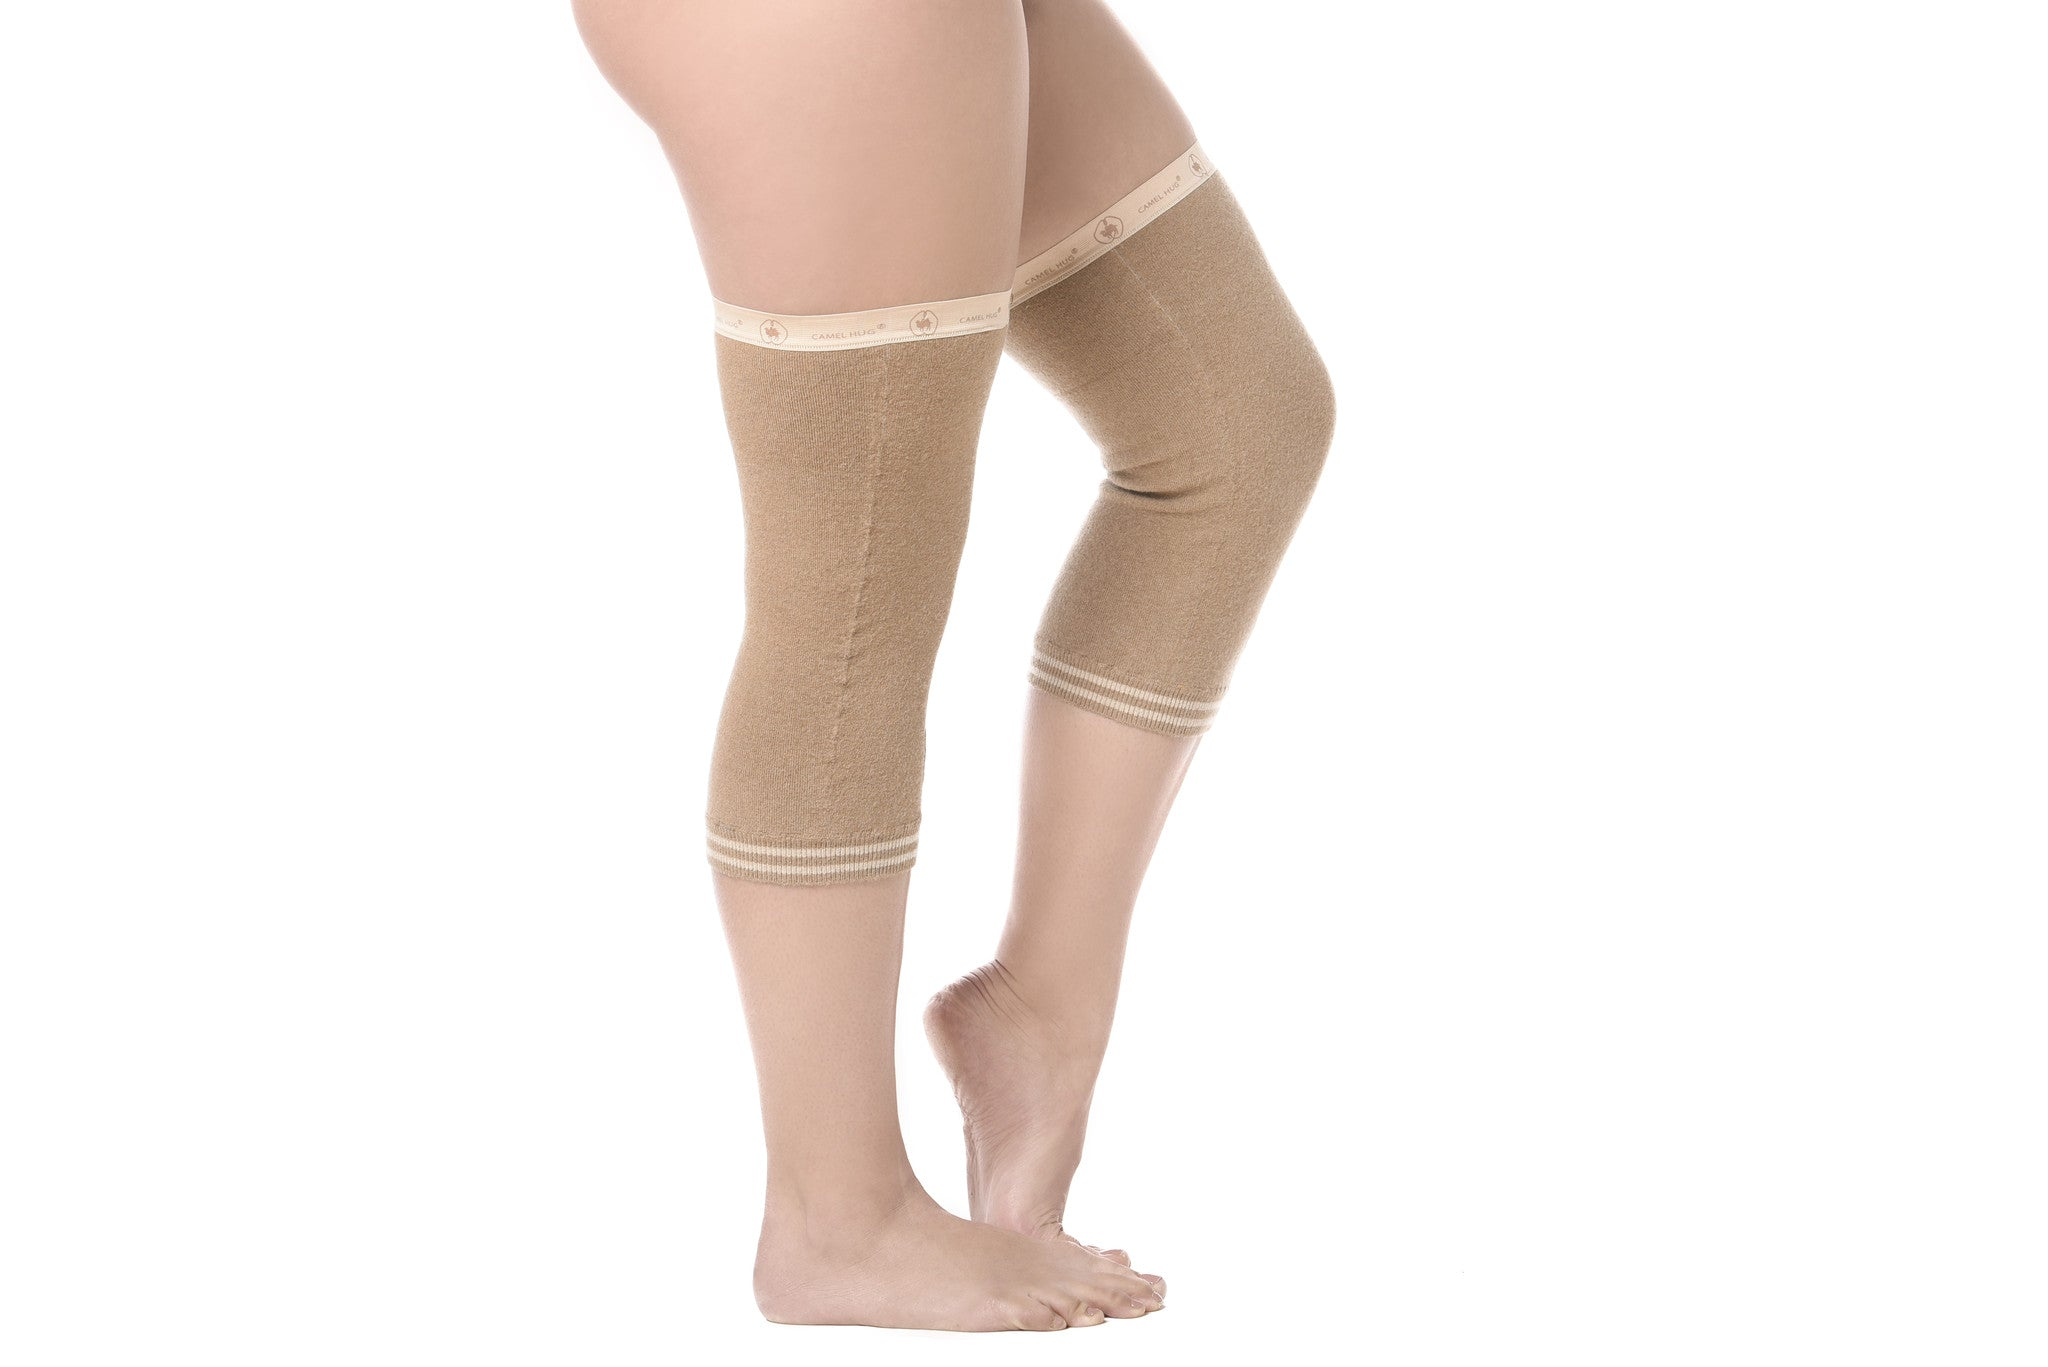 d8d7a0e10c0e14 ... The Camel Hug compression sleeve contours to your shape to provide  optimal fit ...